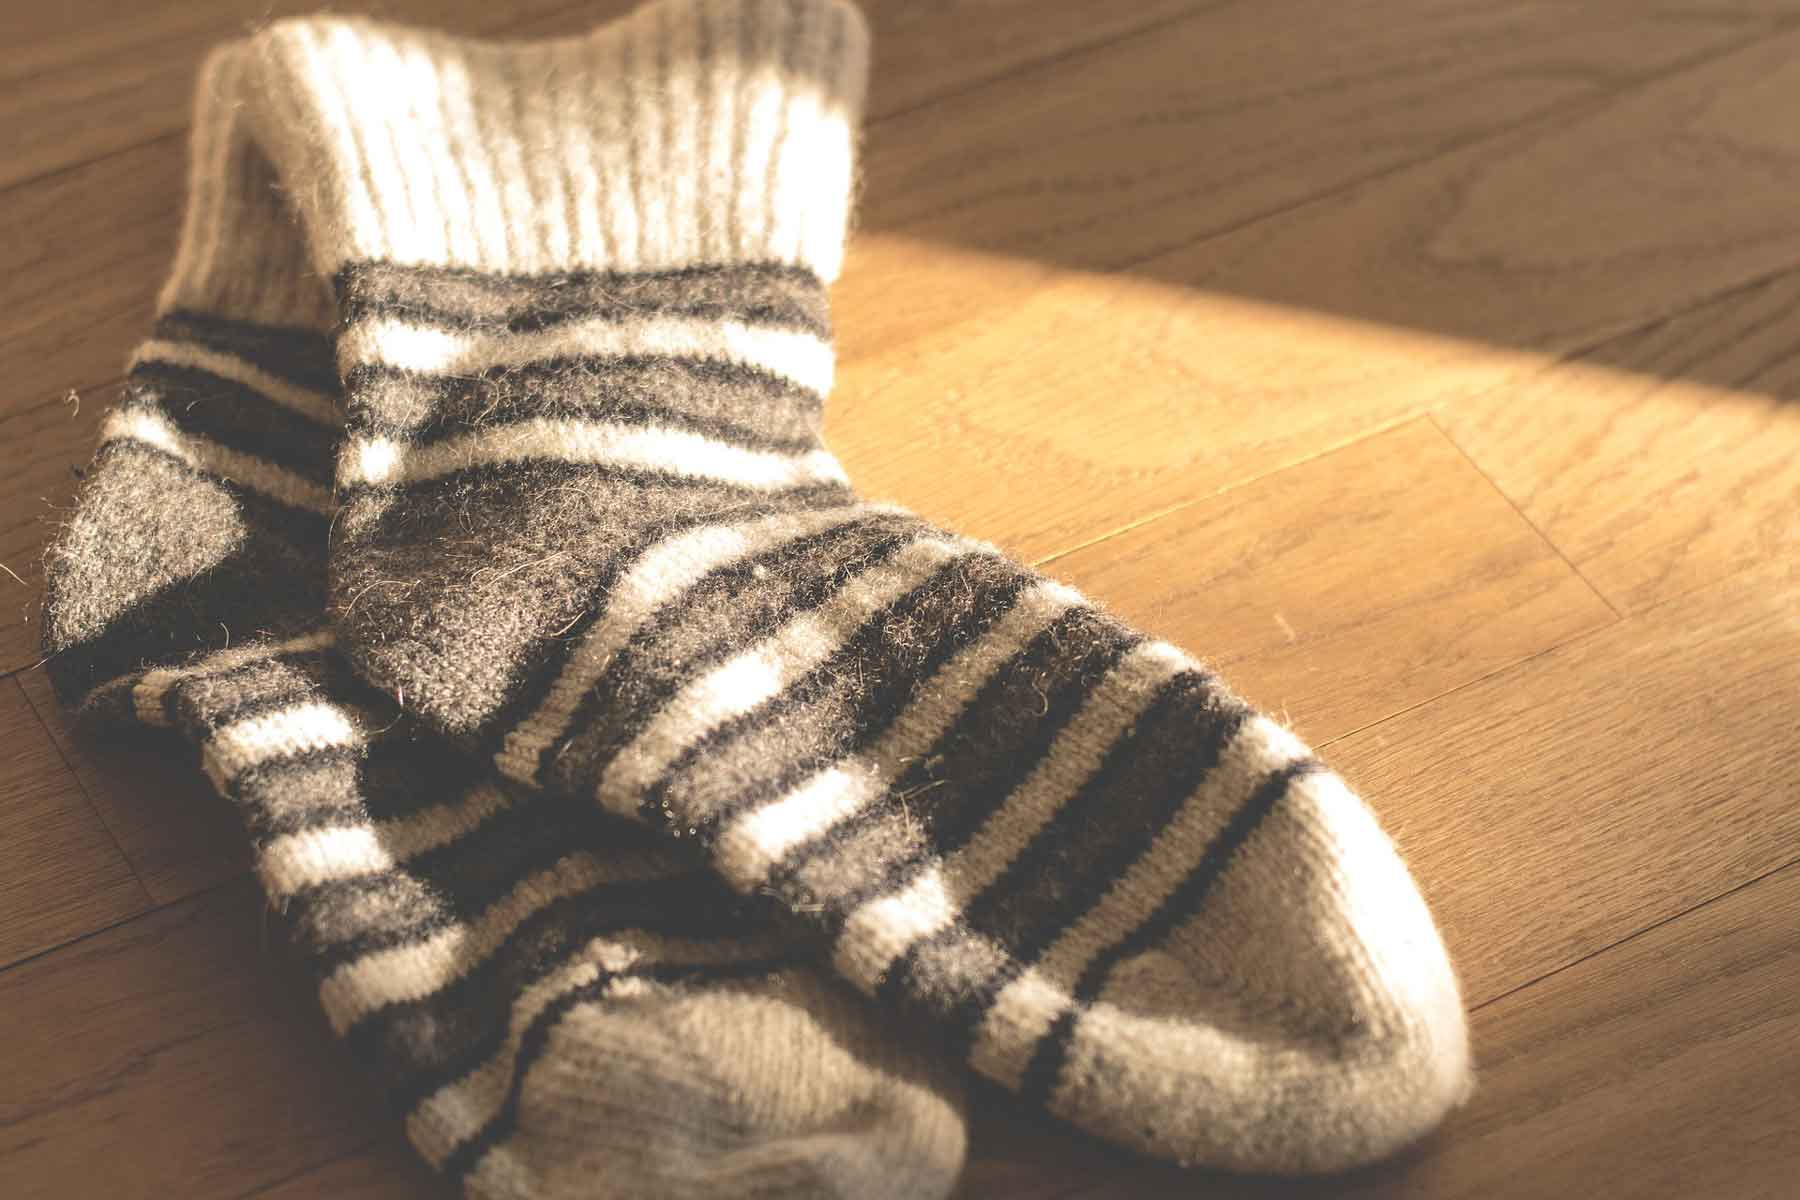 Five pairs of wool hiking socks